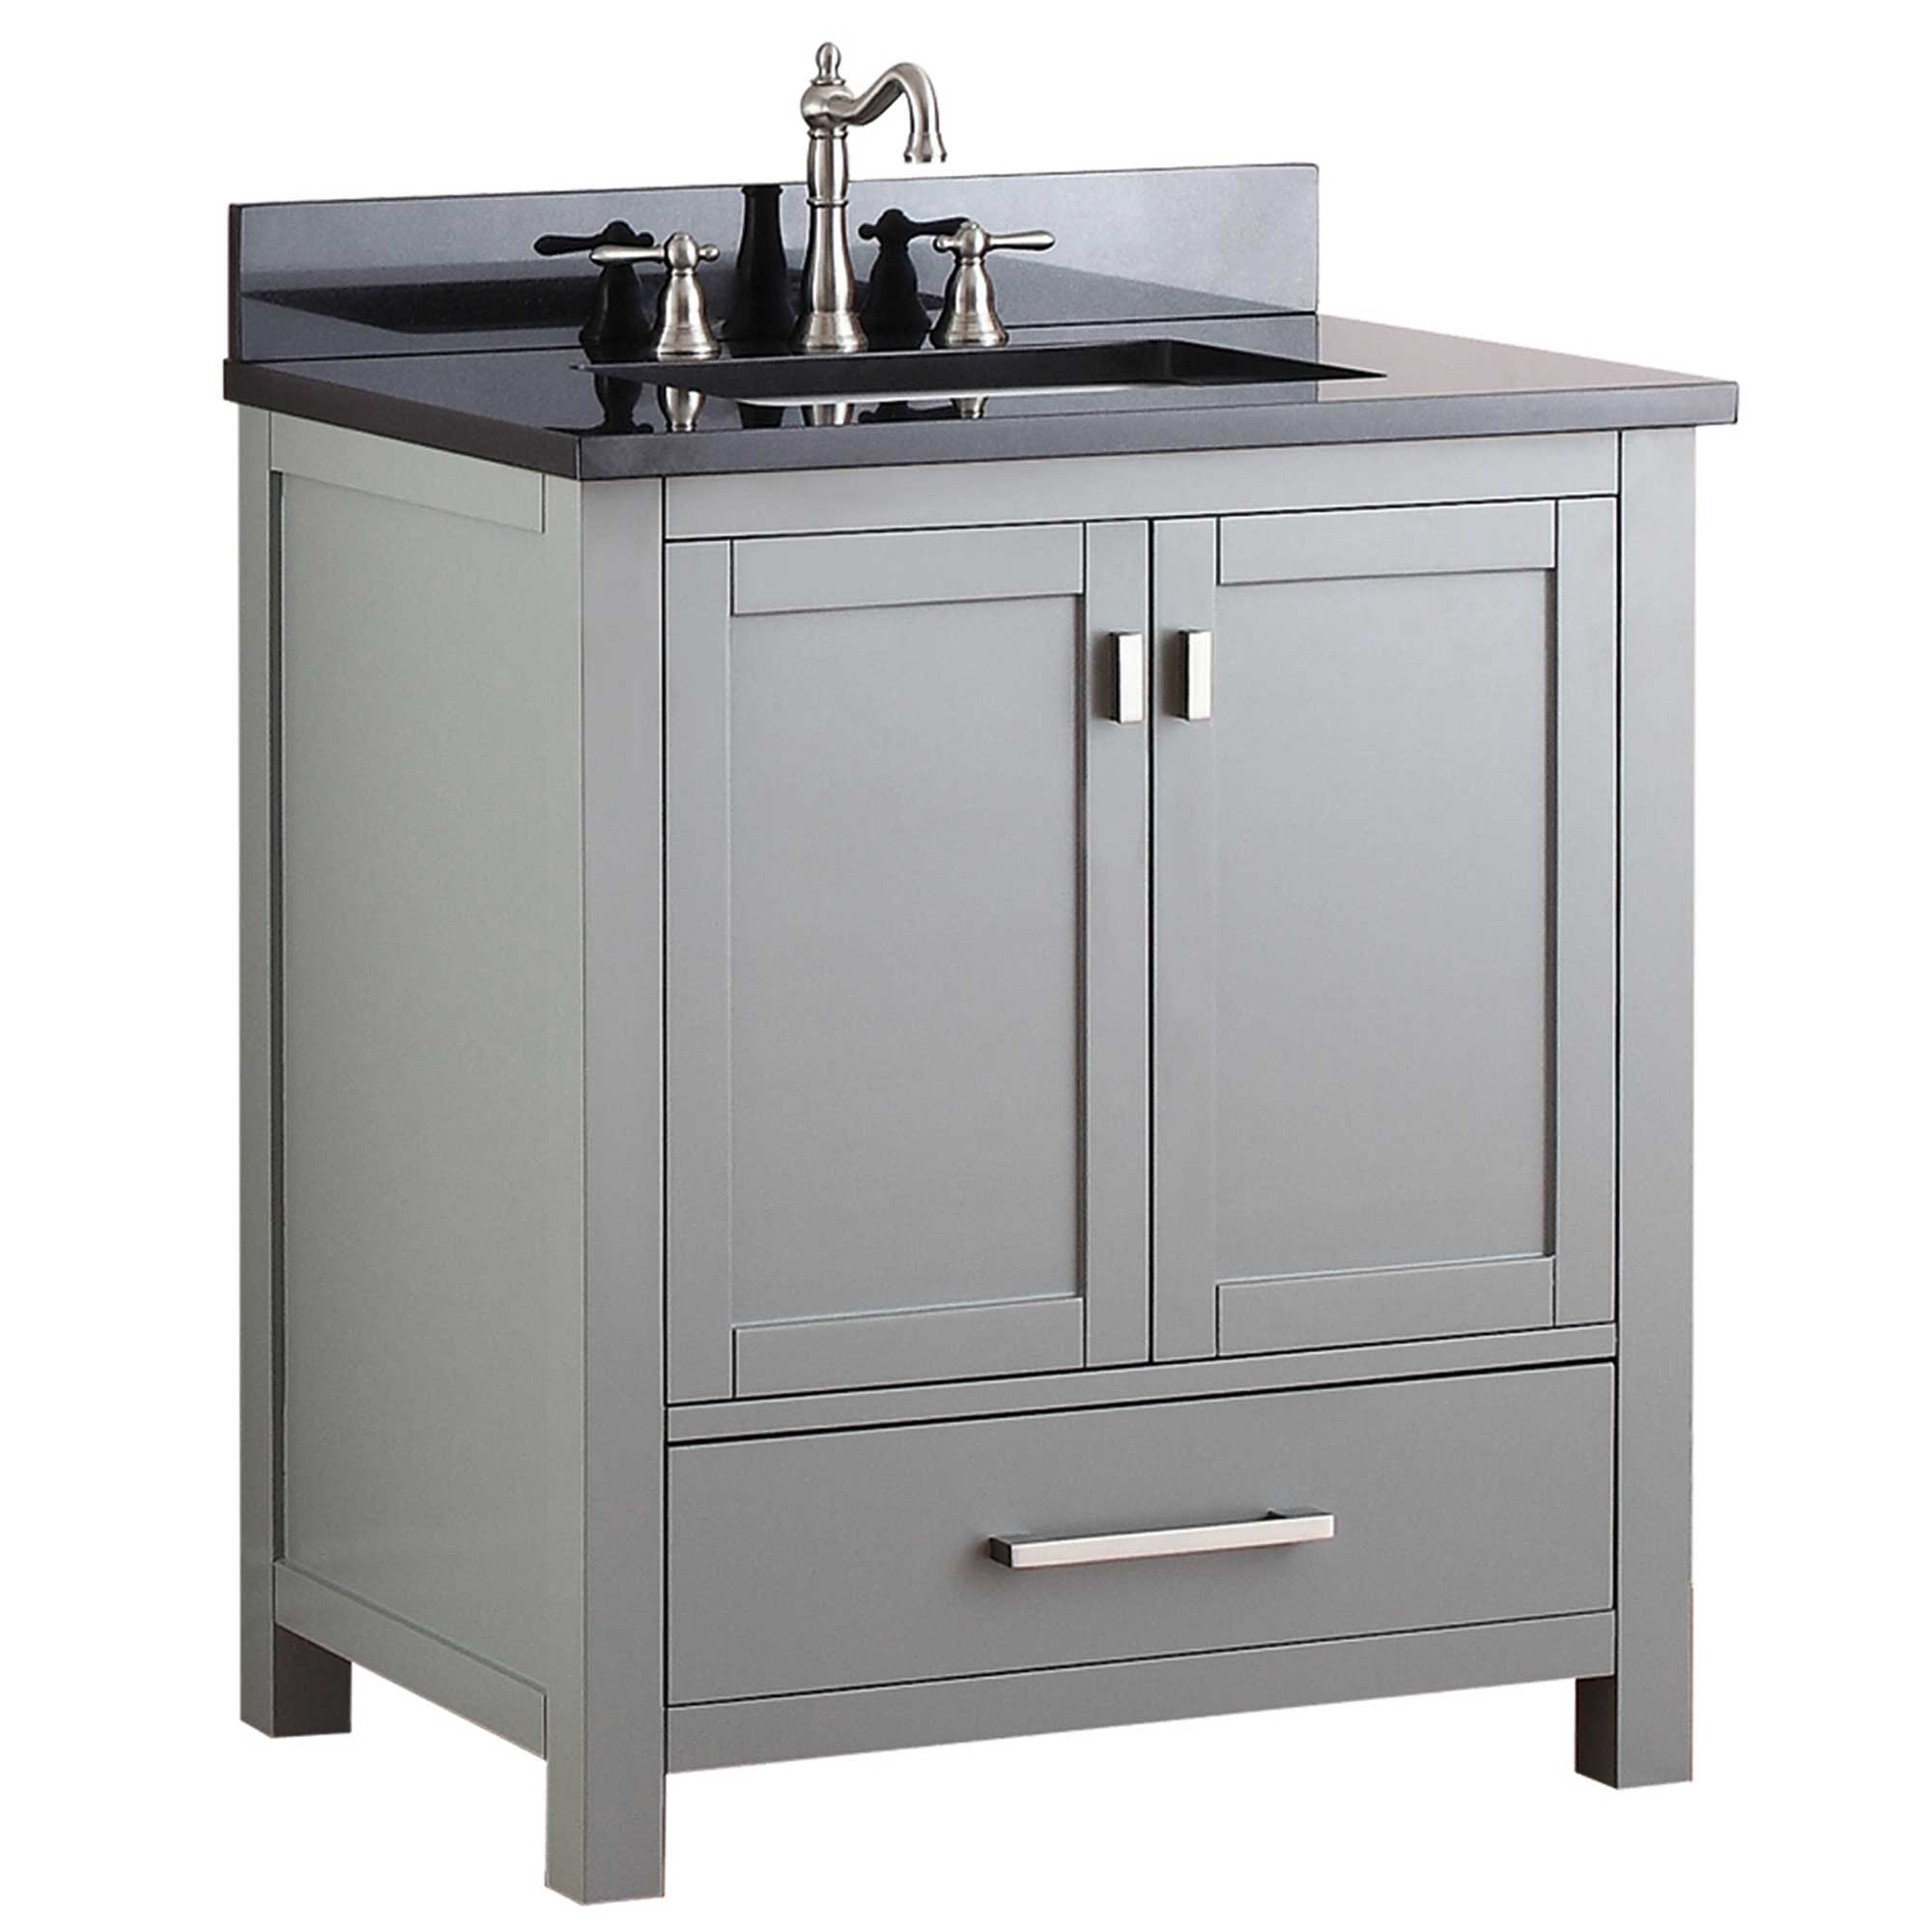 "31"" Toscana Single Bath Vanity - Chilled Gray with Black Granite Top"